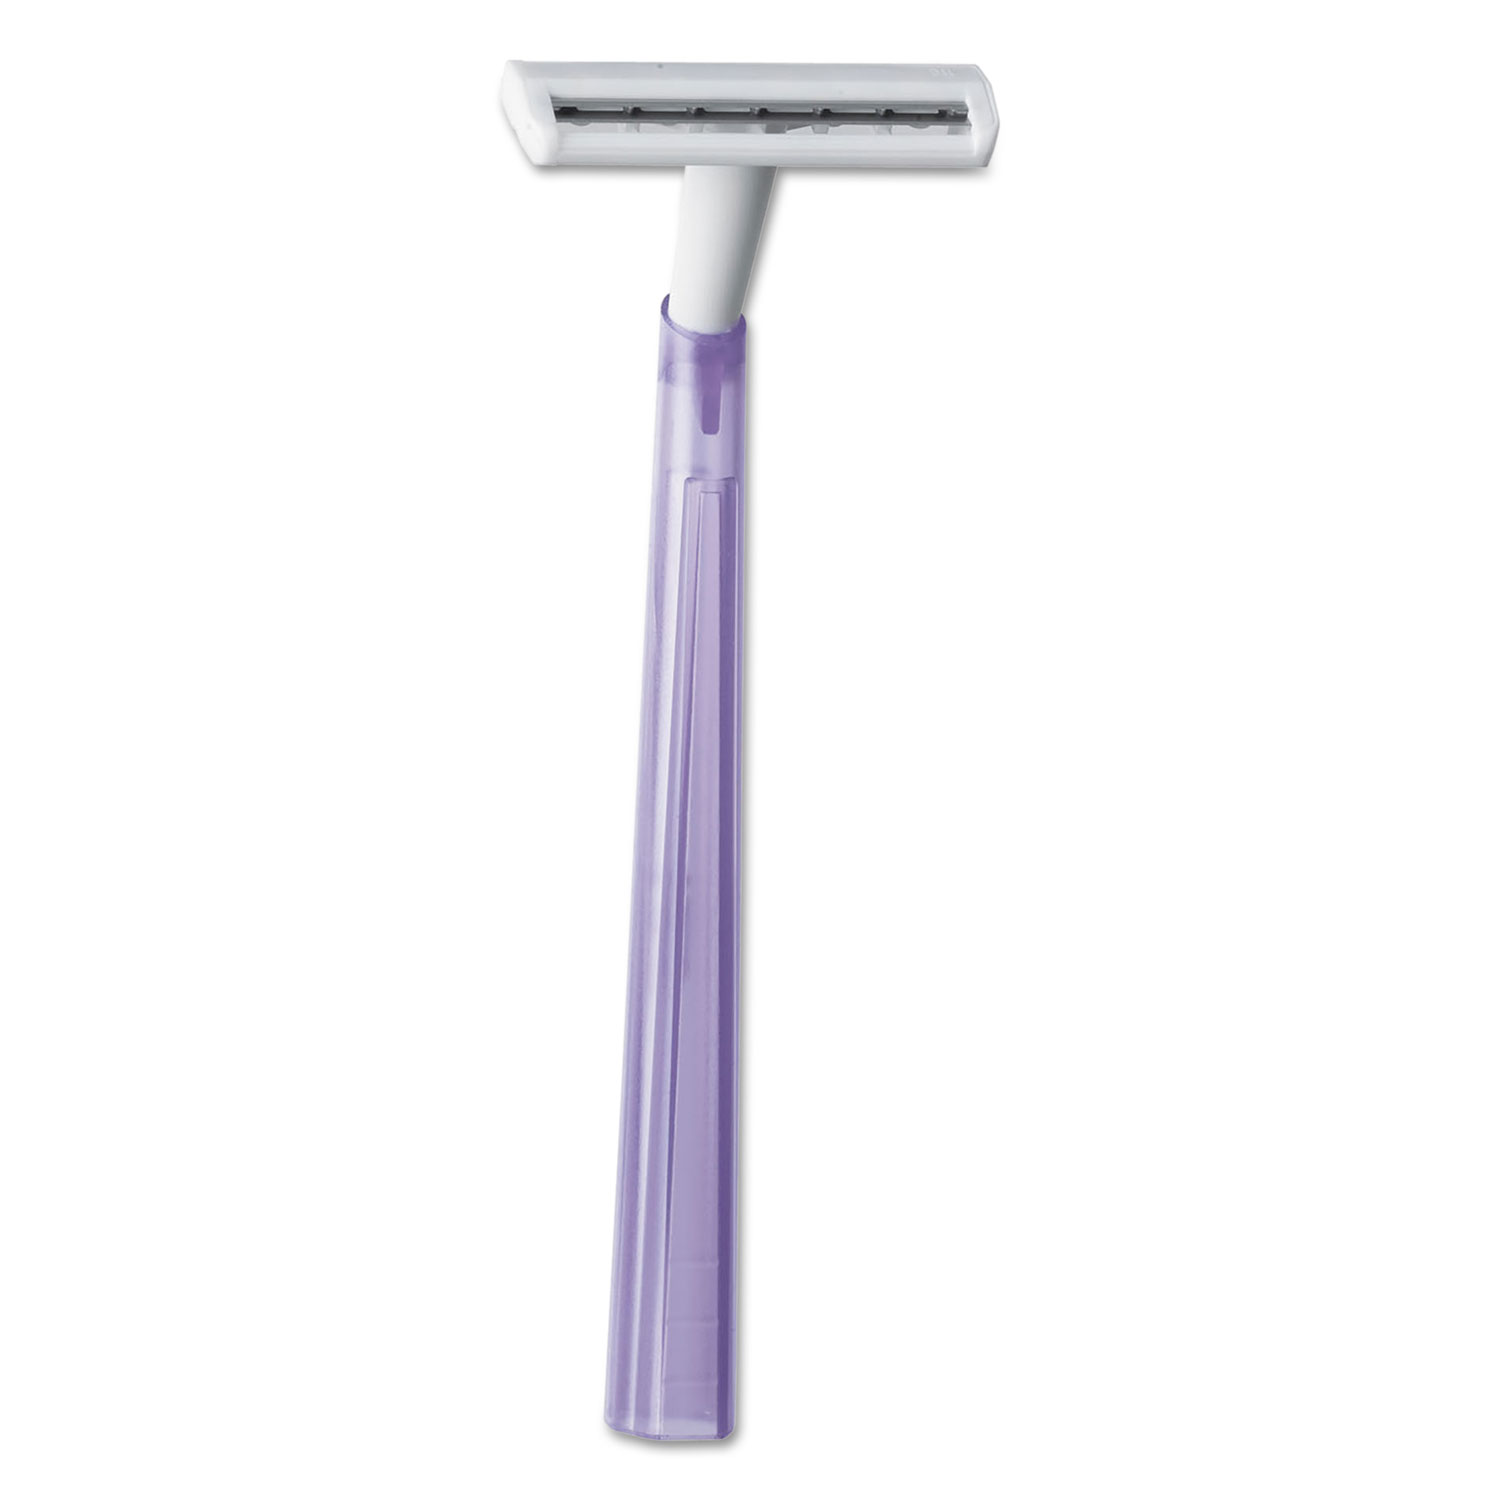 Silky Touch Women's Disposable Razor, 2 Blades, Assorted Colors, 10/Pack